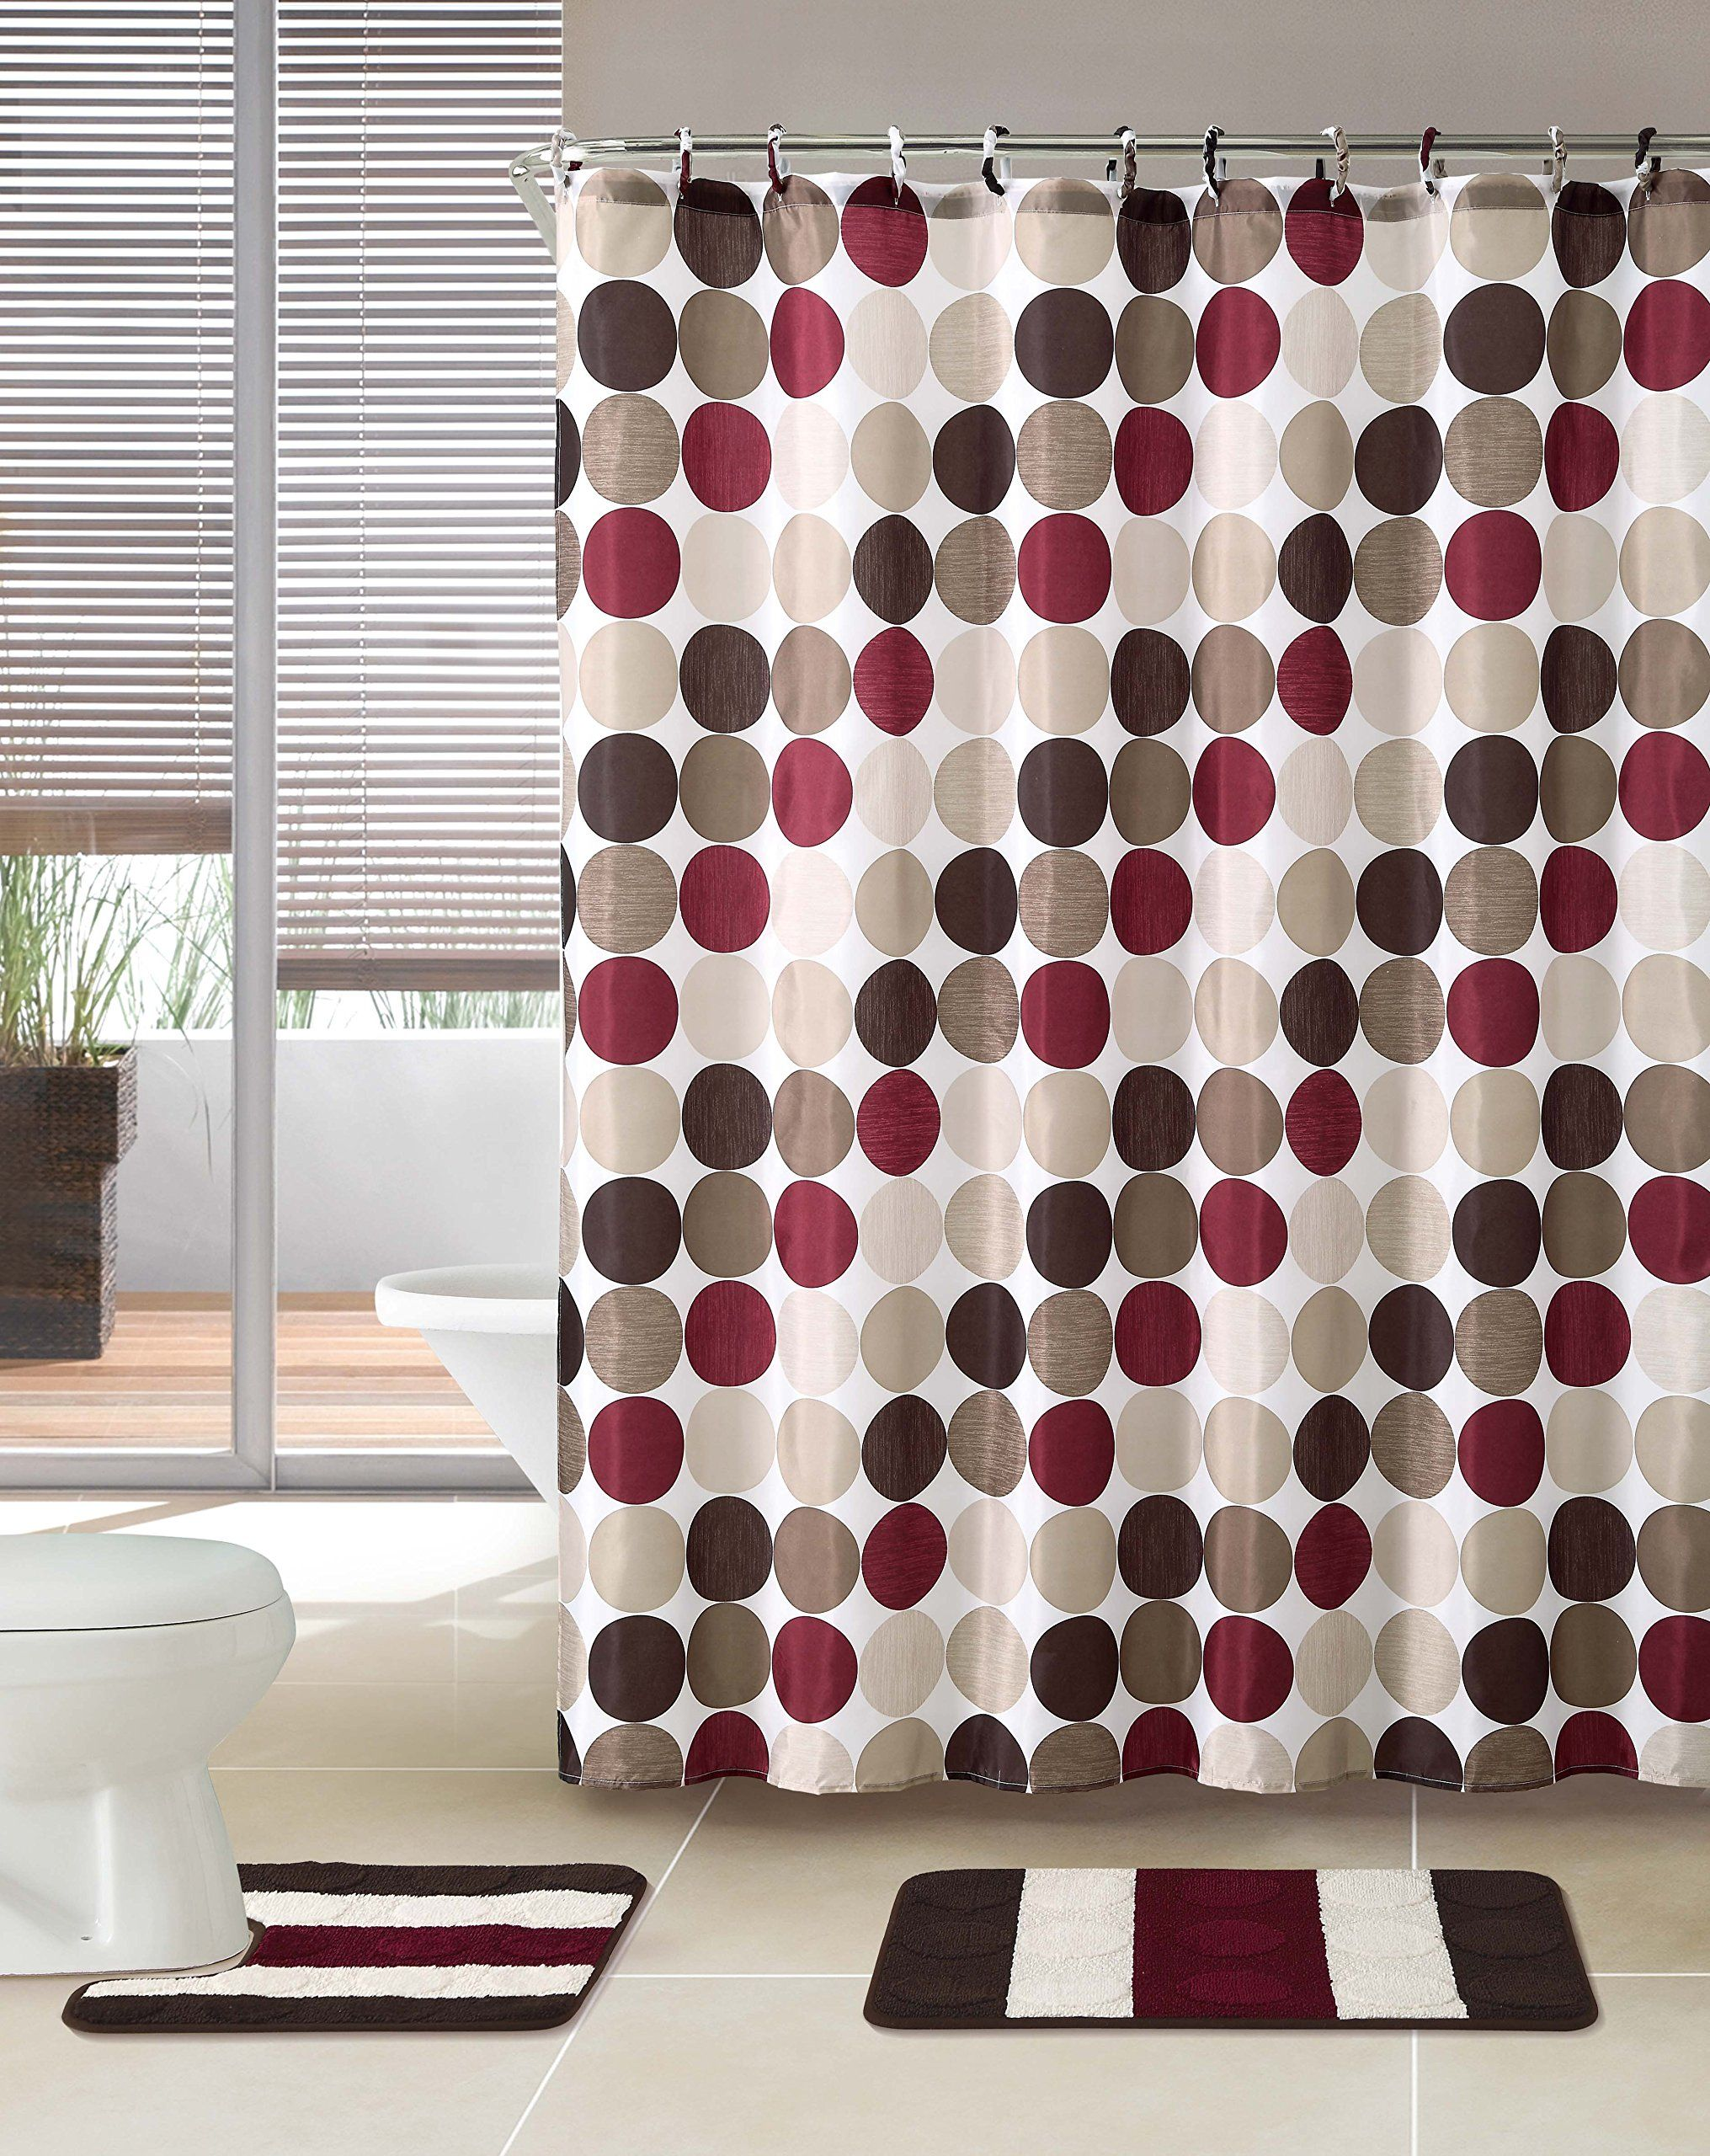 3 Piece Bath Rug Set W Shower Curtain And Matching Rings Brown